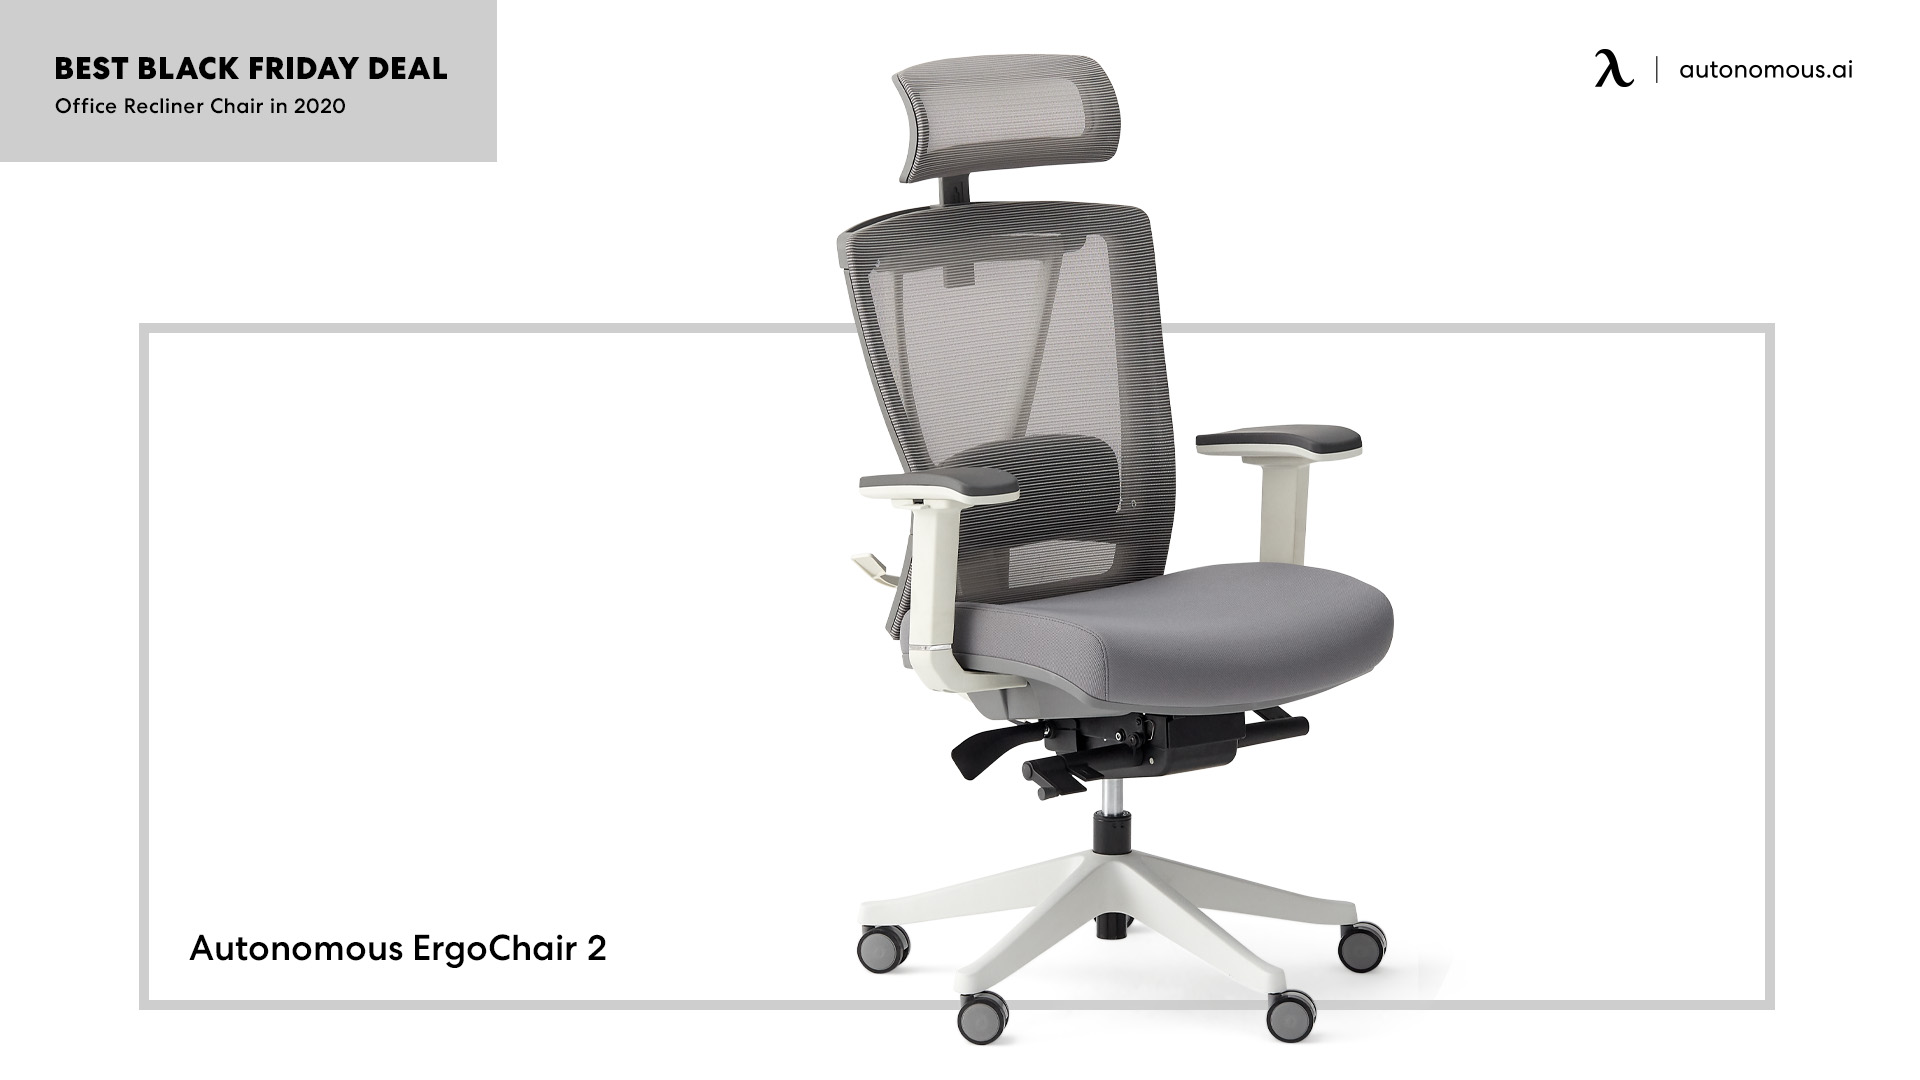 The ErgoChair 2 promoted in black friday from Autonomous